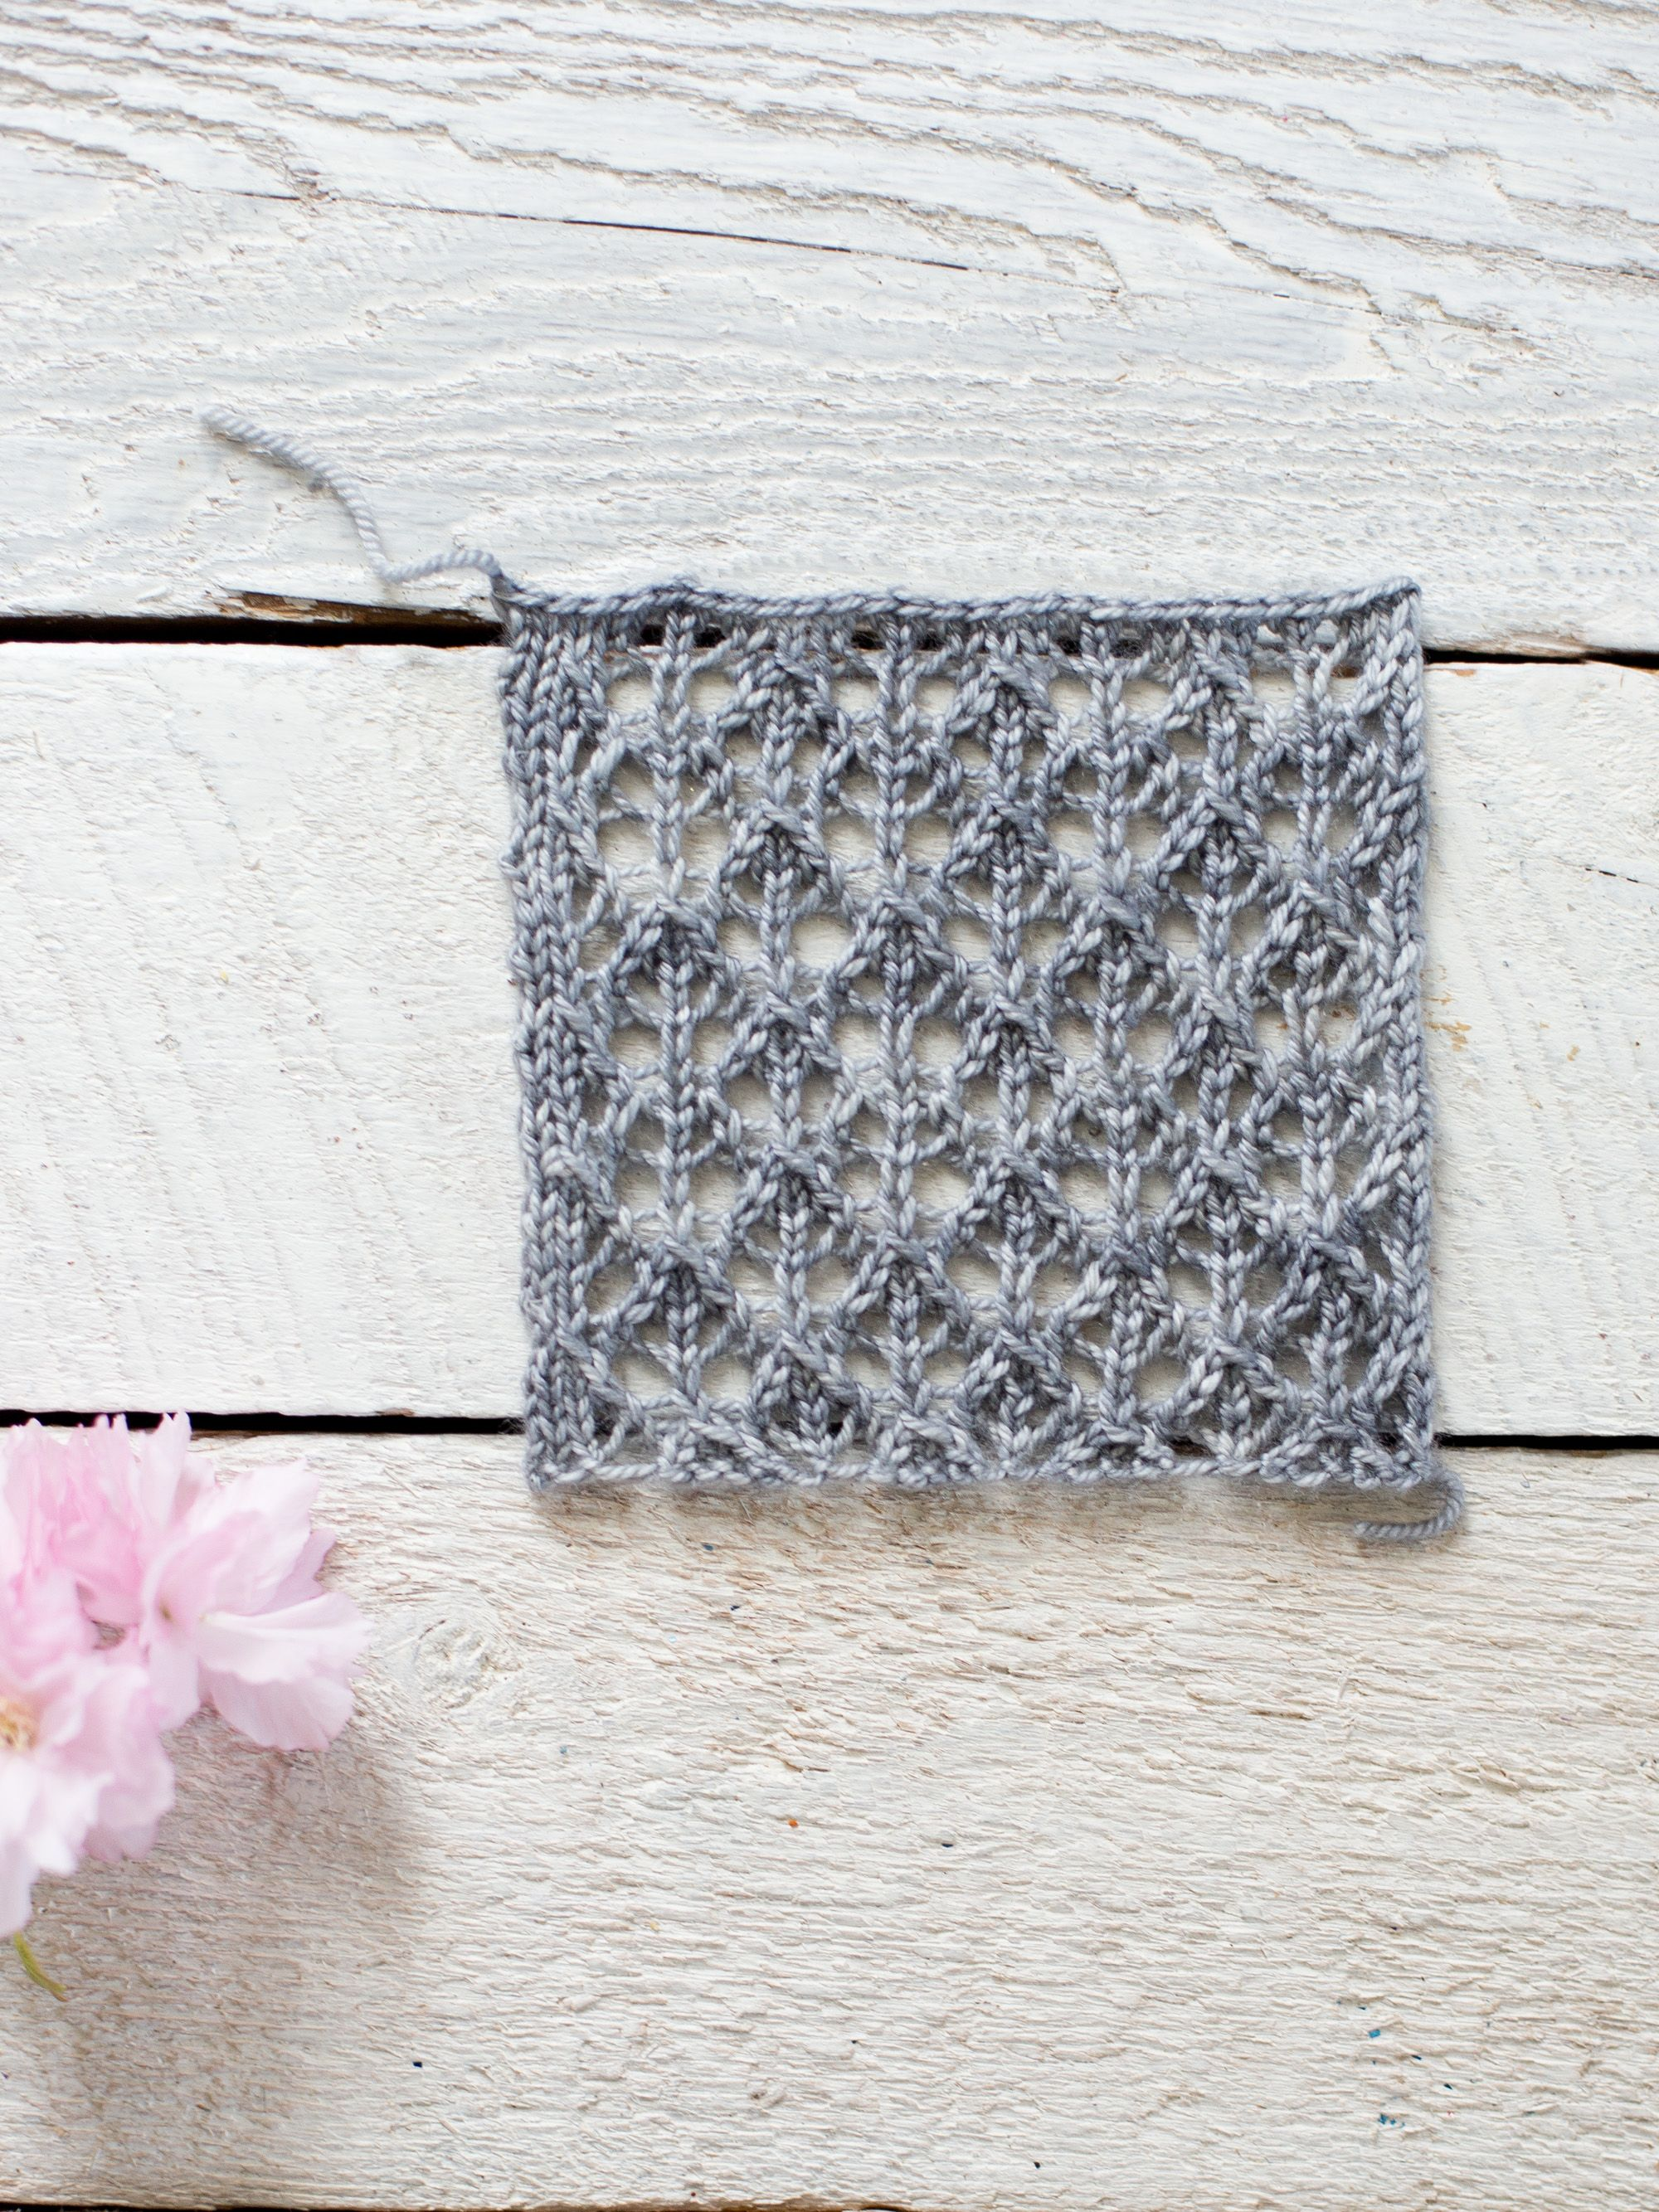 How To Make An Easy Lace Knit Shawl Pattern | Schals, Muster und ...